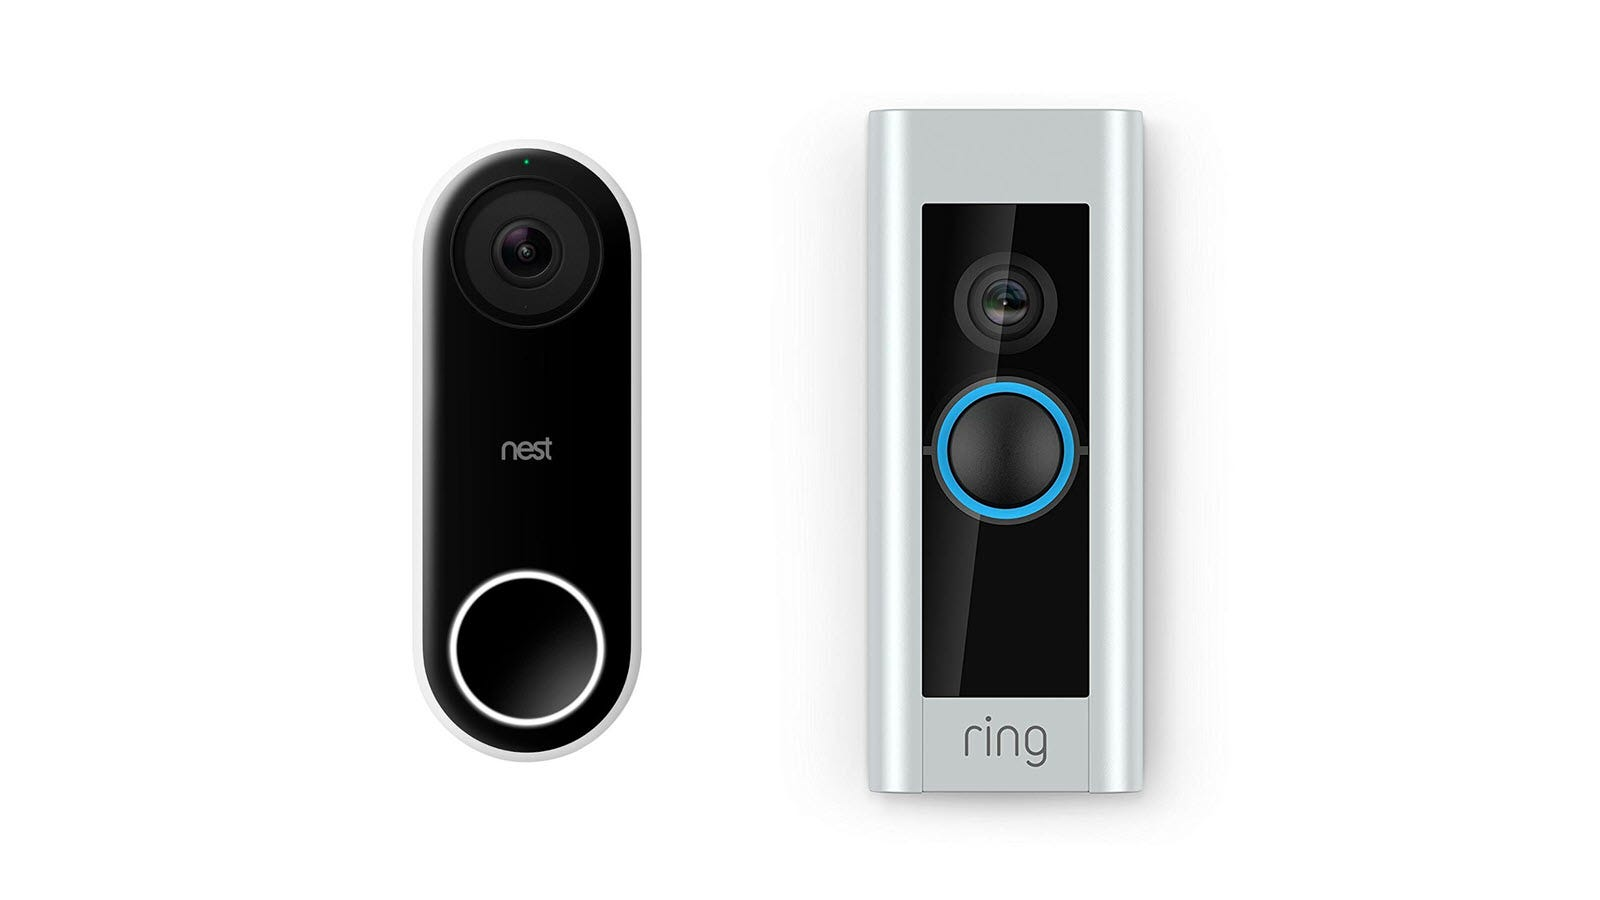 A Nest Hello Video Doorbell and Ring Video doorbell.